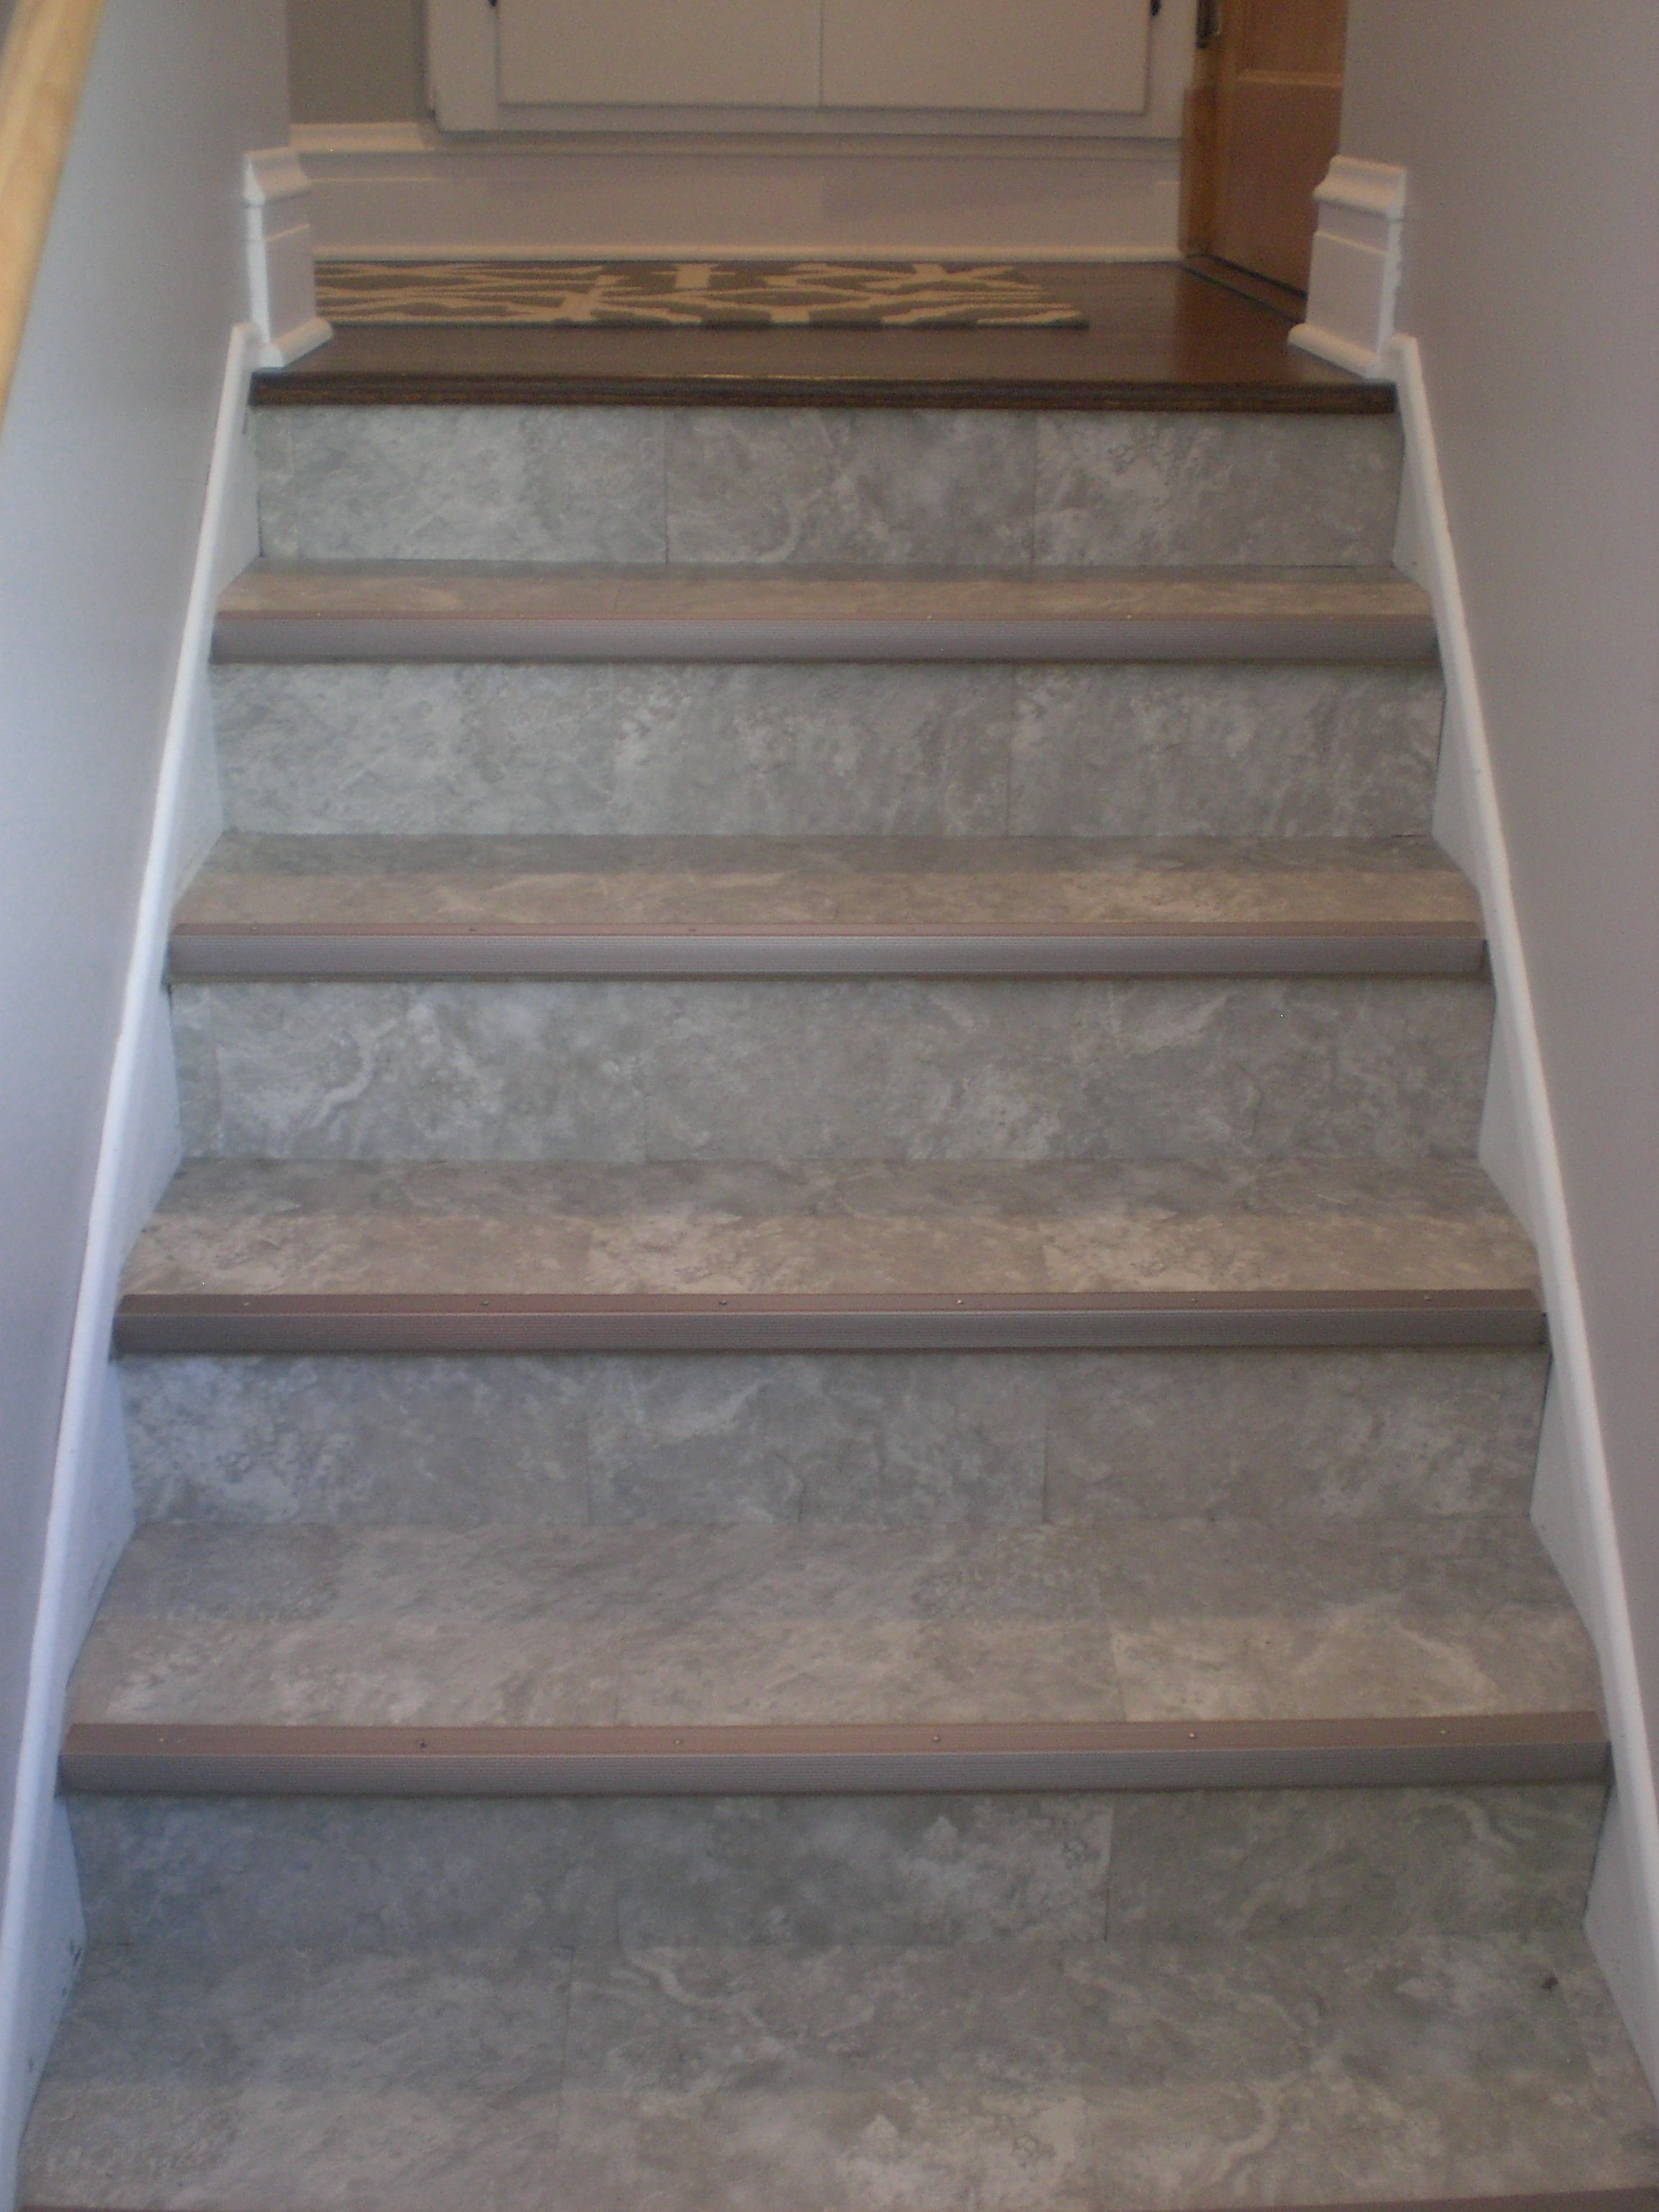 Linoleum On Stairs Google Search Stairs Linoleum